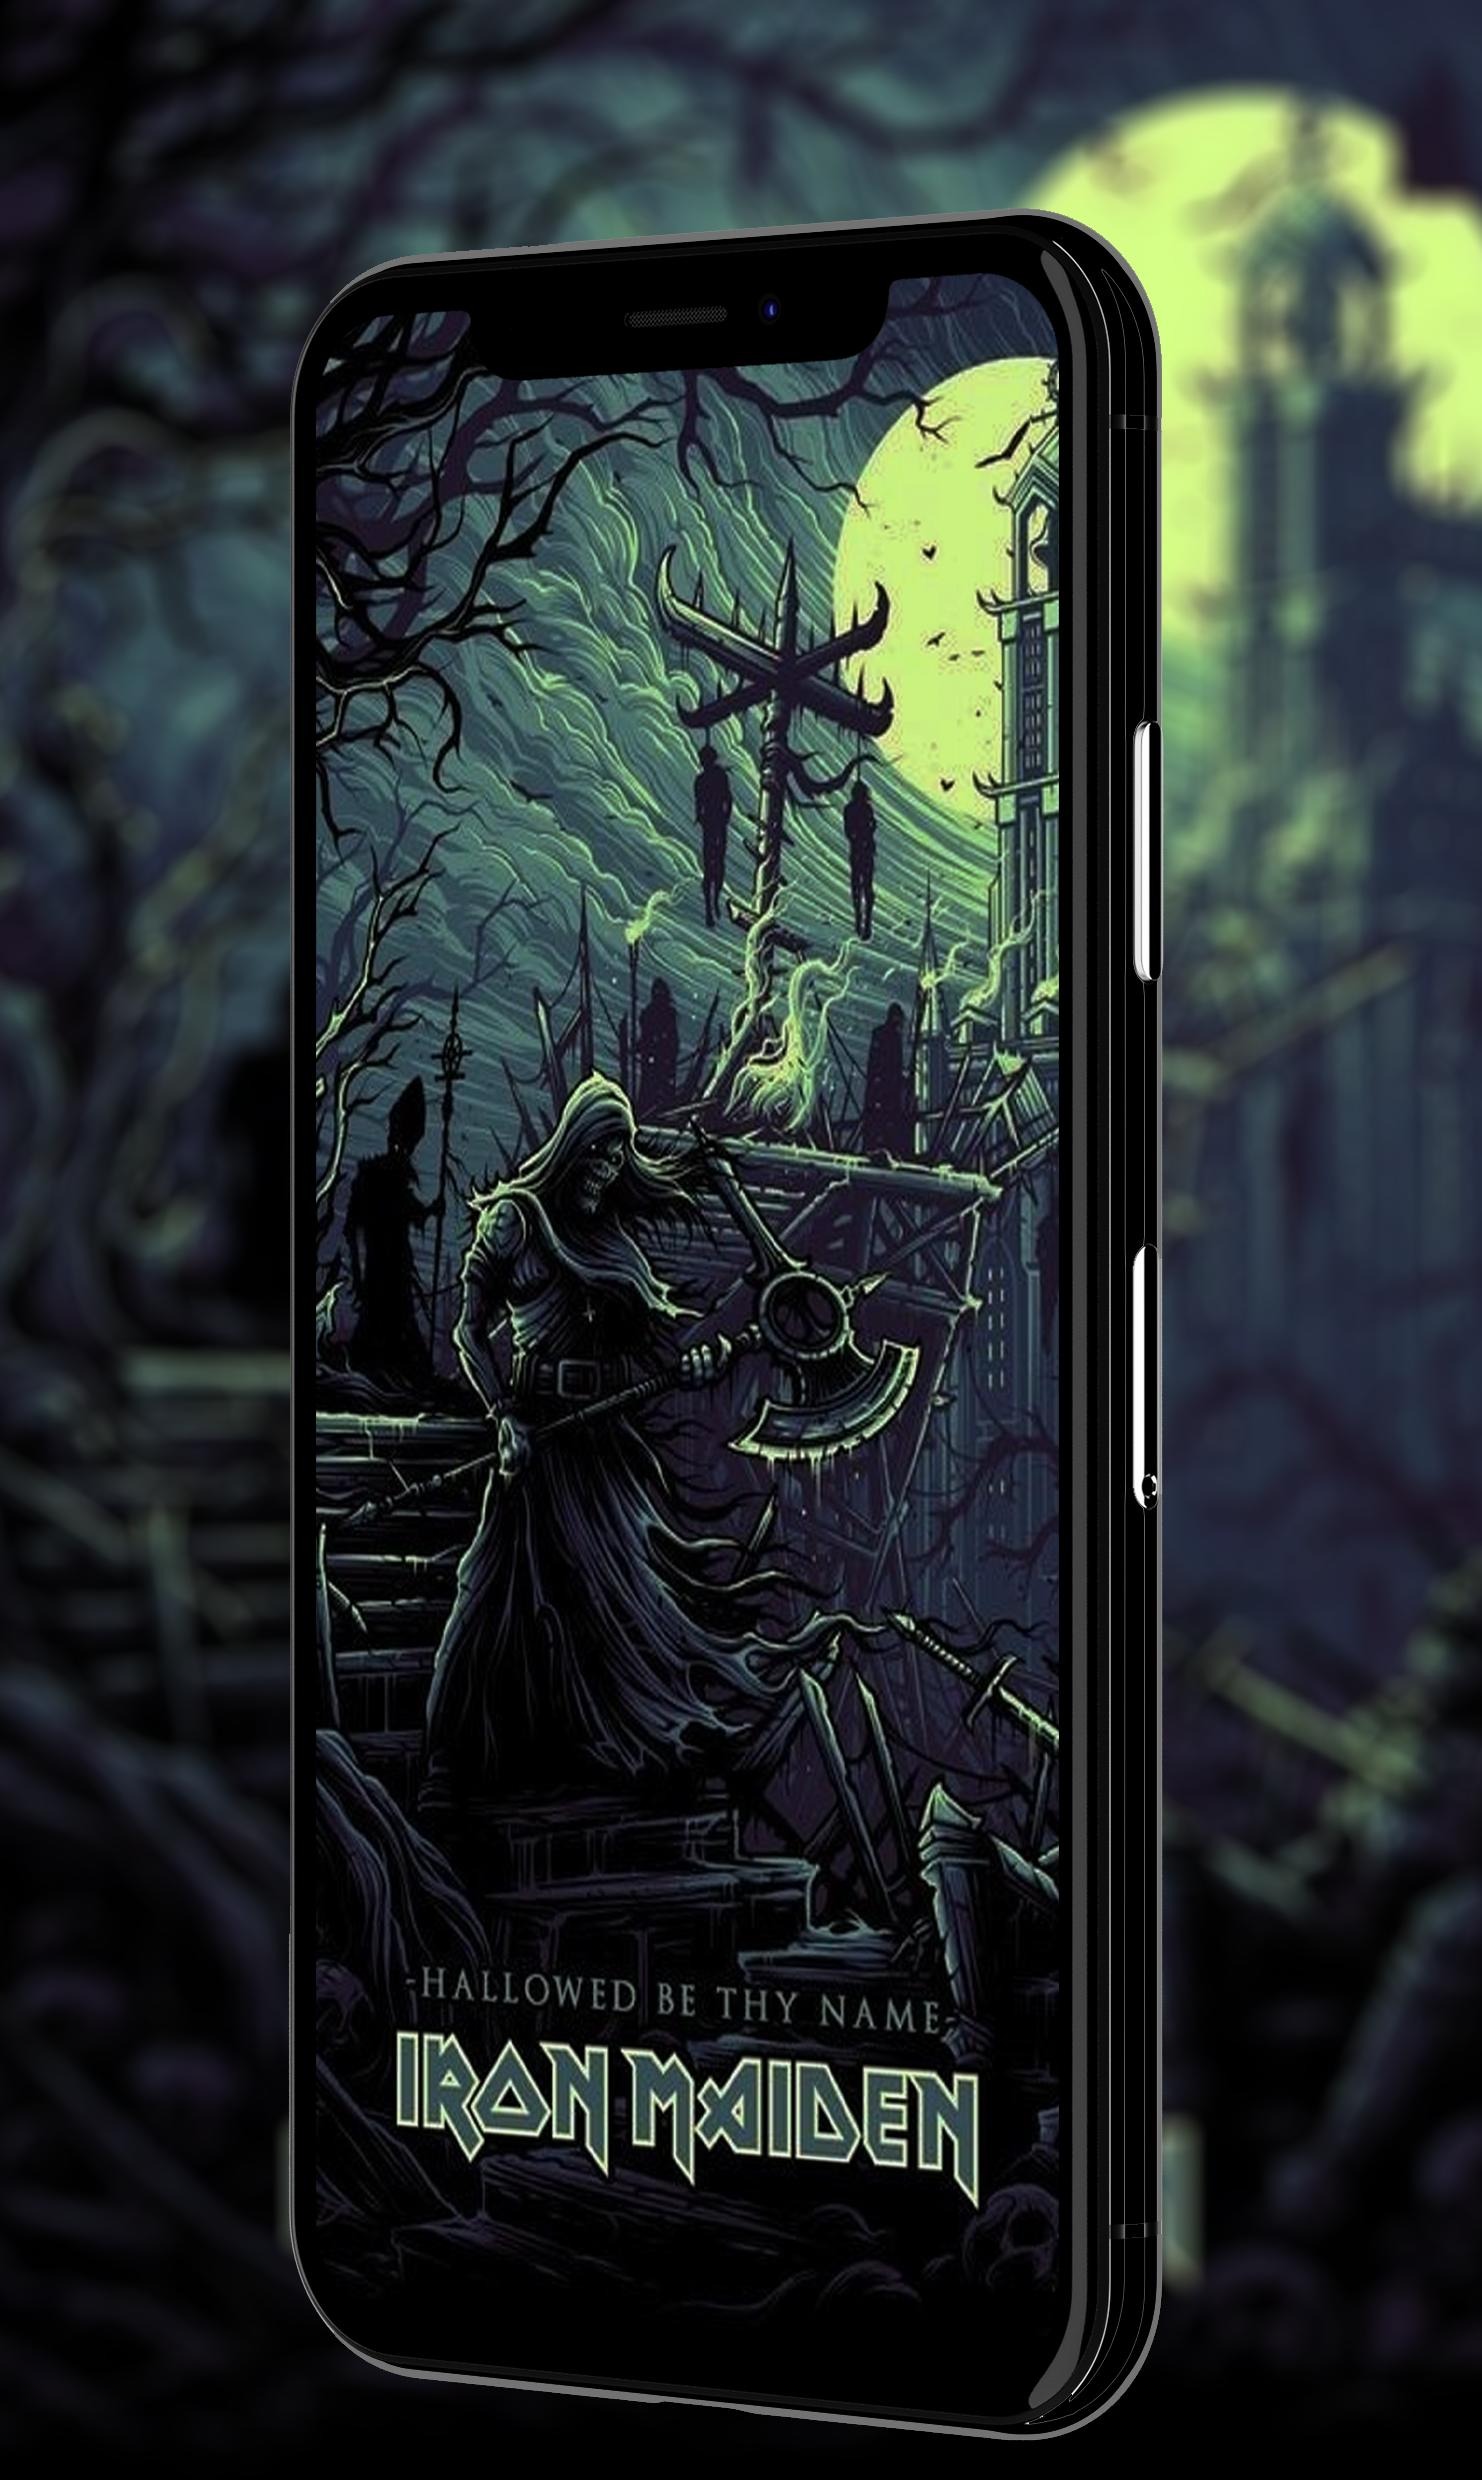 Heavy Metal Rock Wallpapers For Android Apk Download